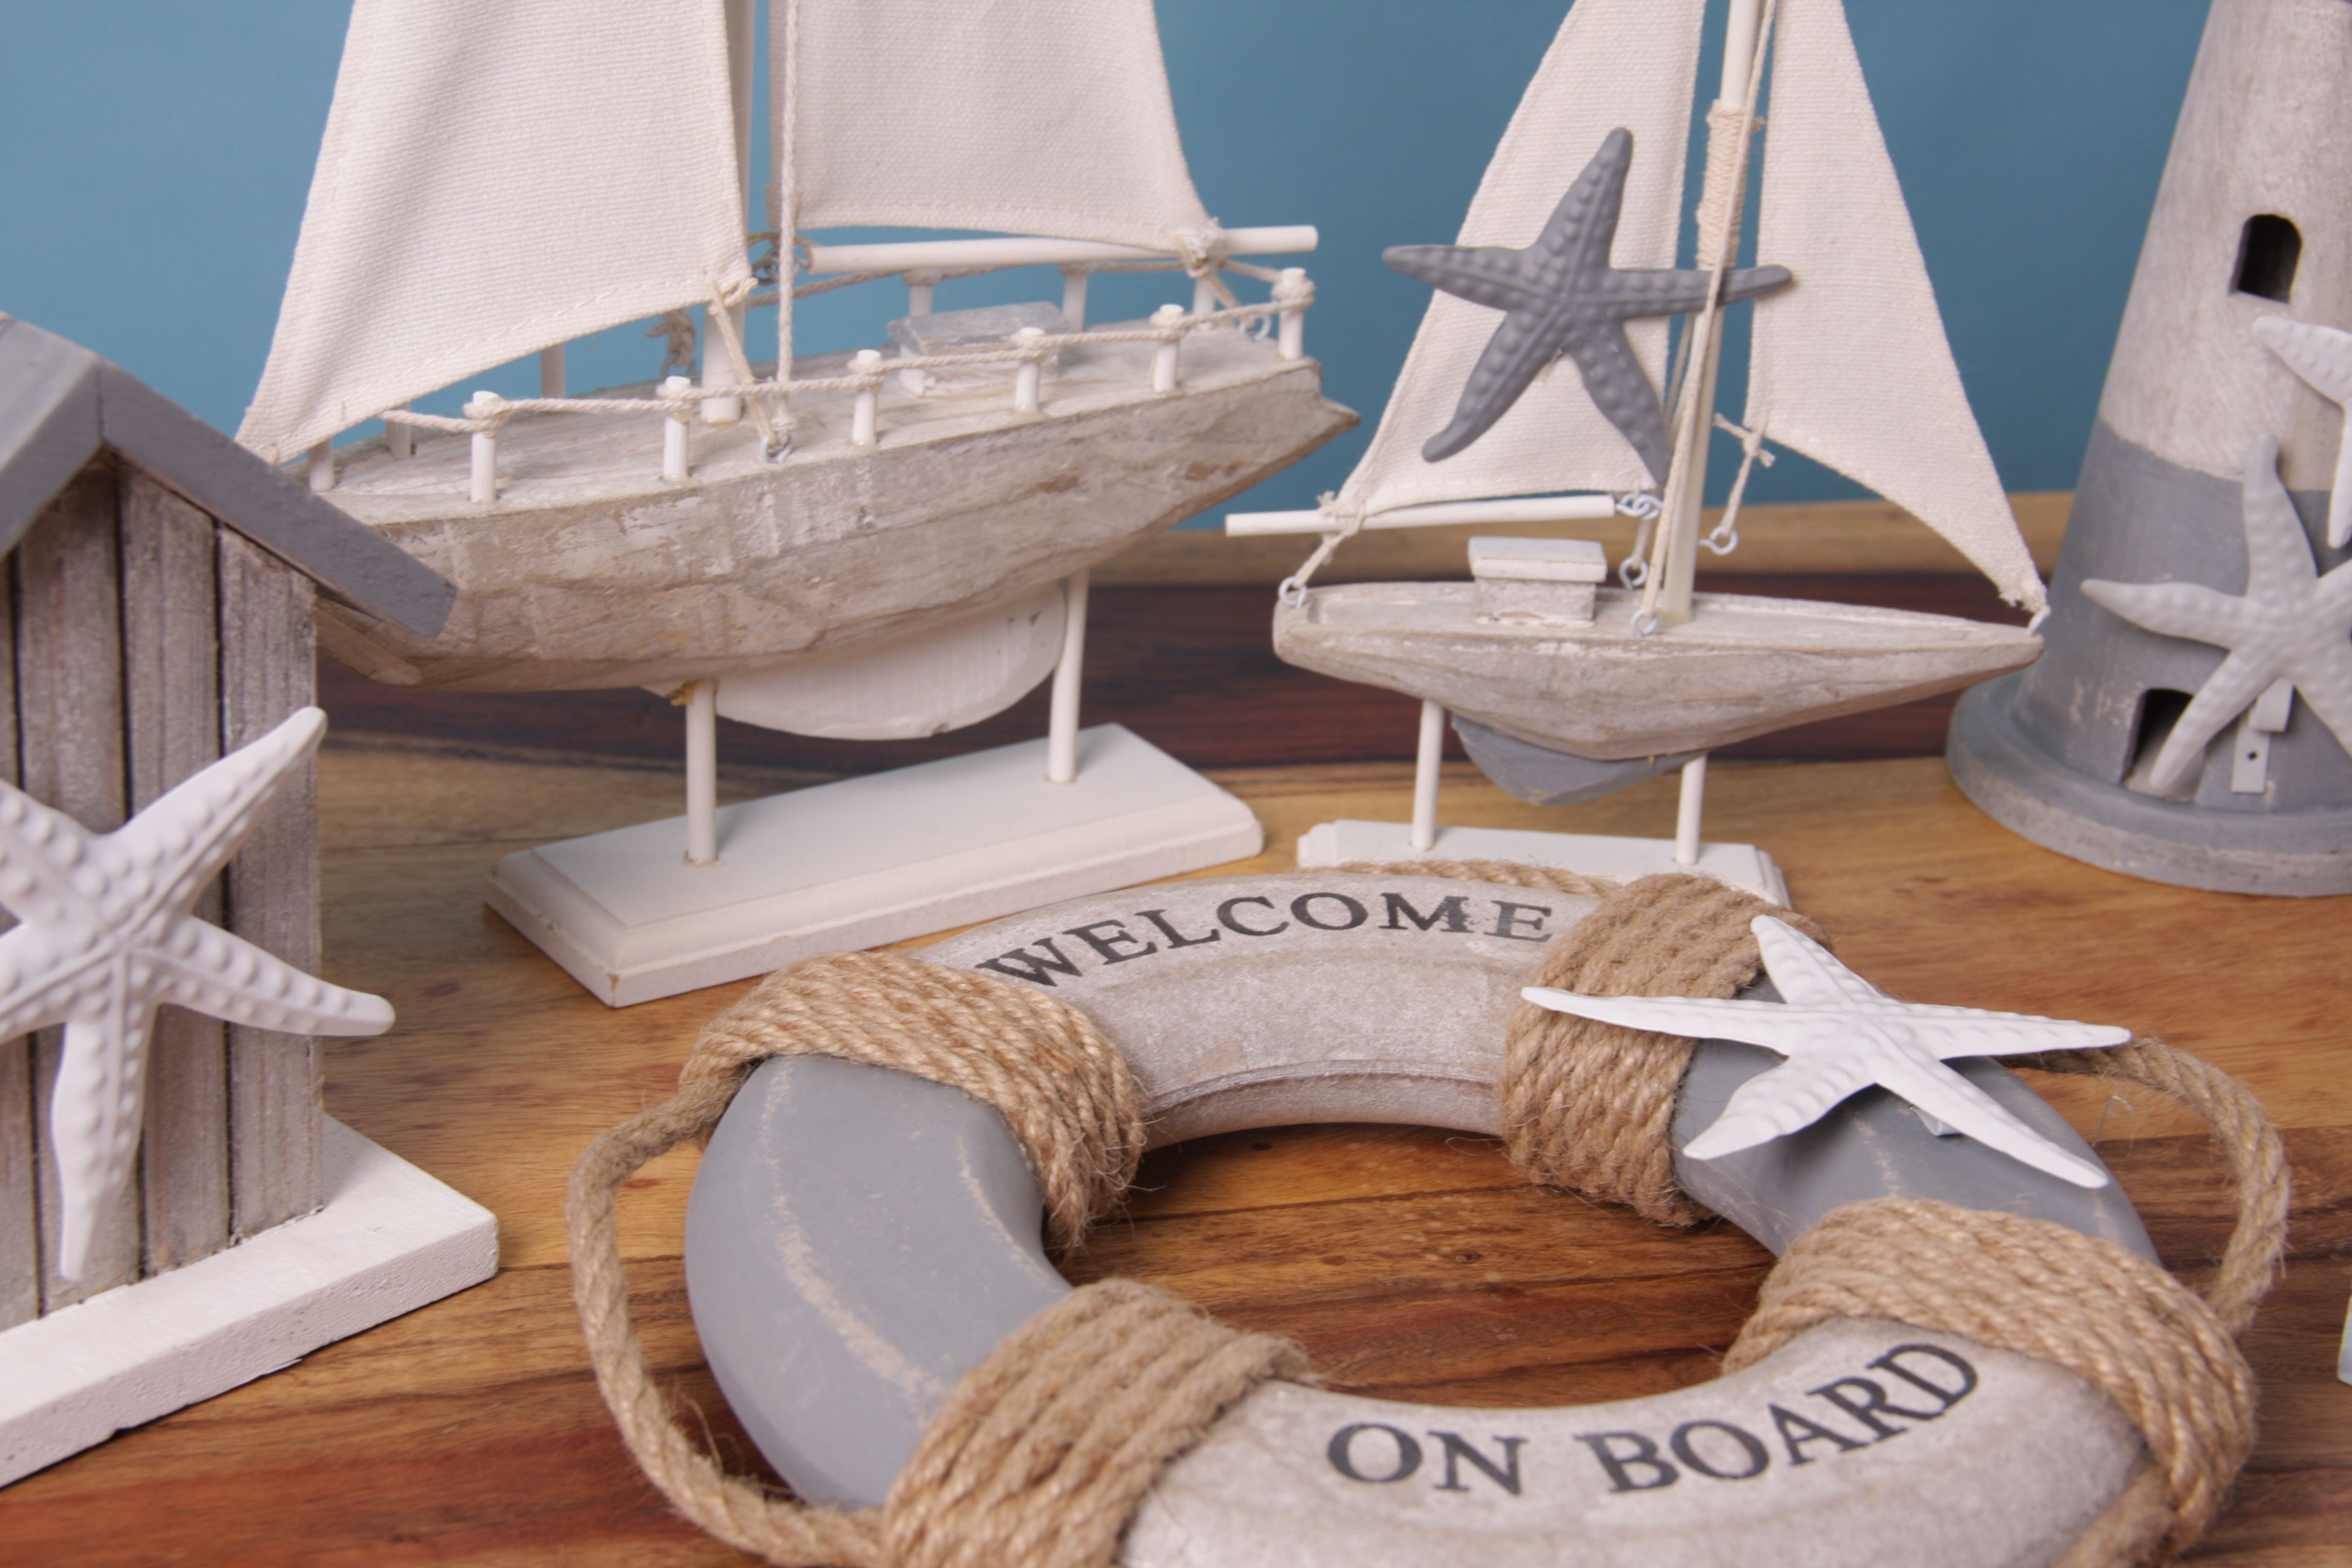 Nautical Wooden Seaside Ornaments With Images Wholesale Gifts Gift Shop Giftware